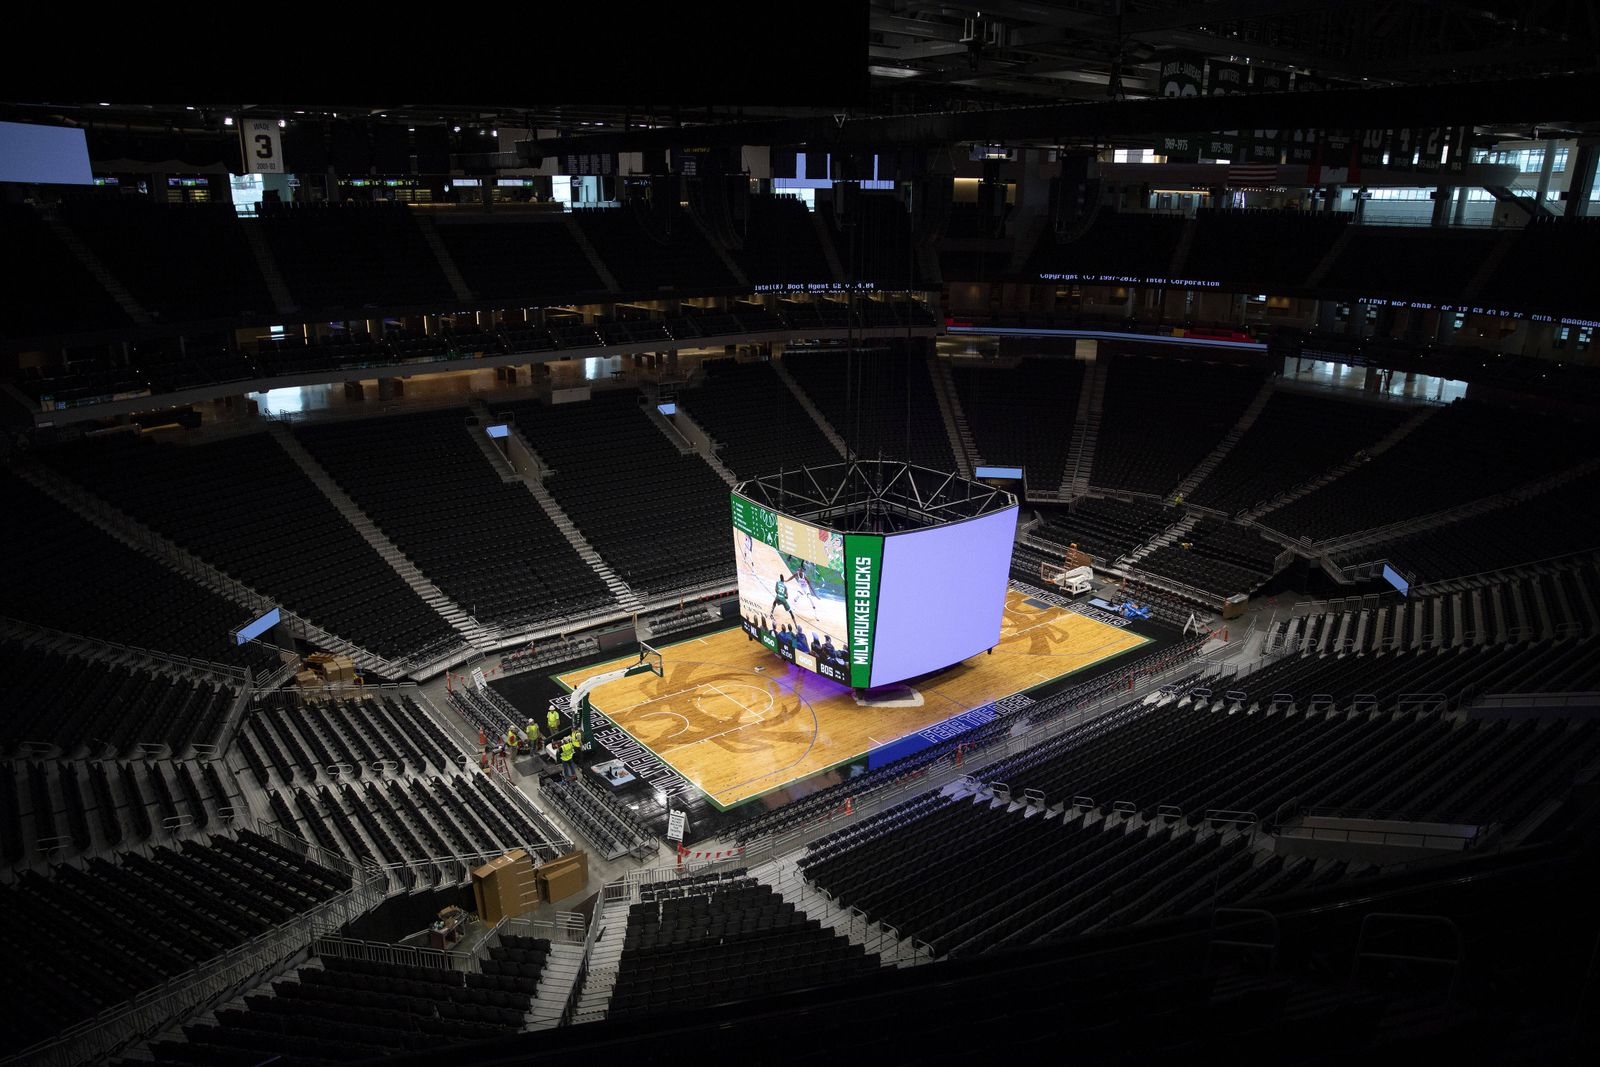 August 26, 2020: The NBA, Basketball Herren, USA announced it will postpone Game 5 of three different series in response